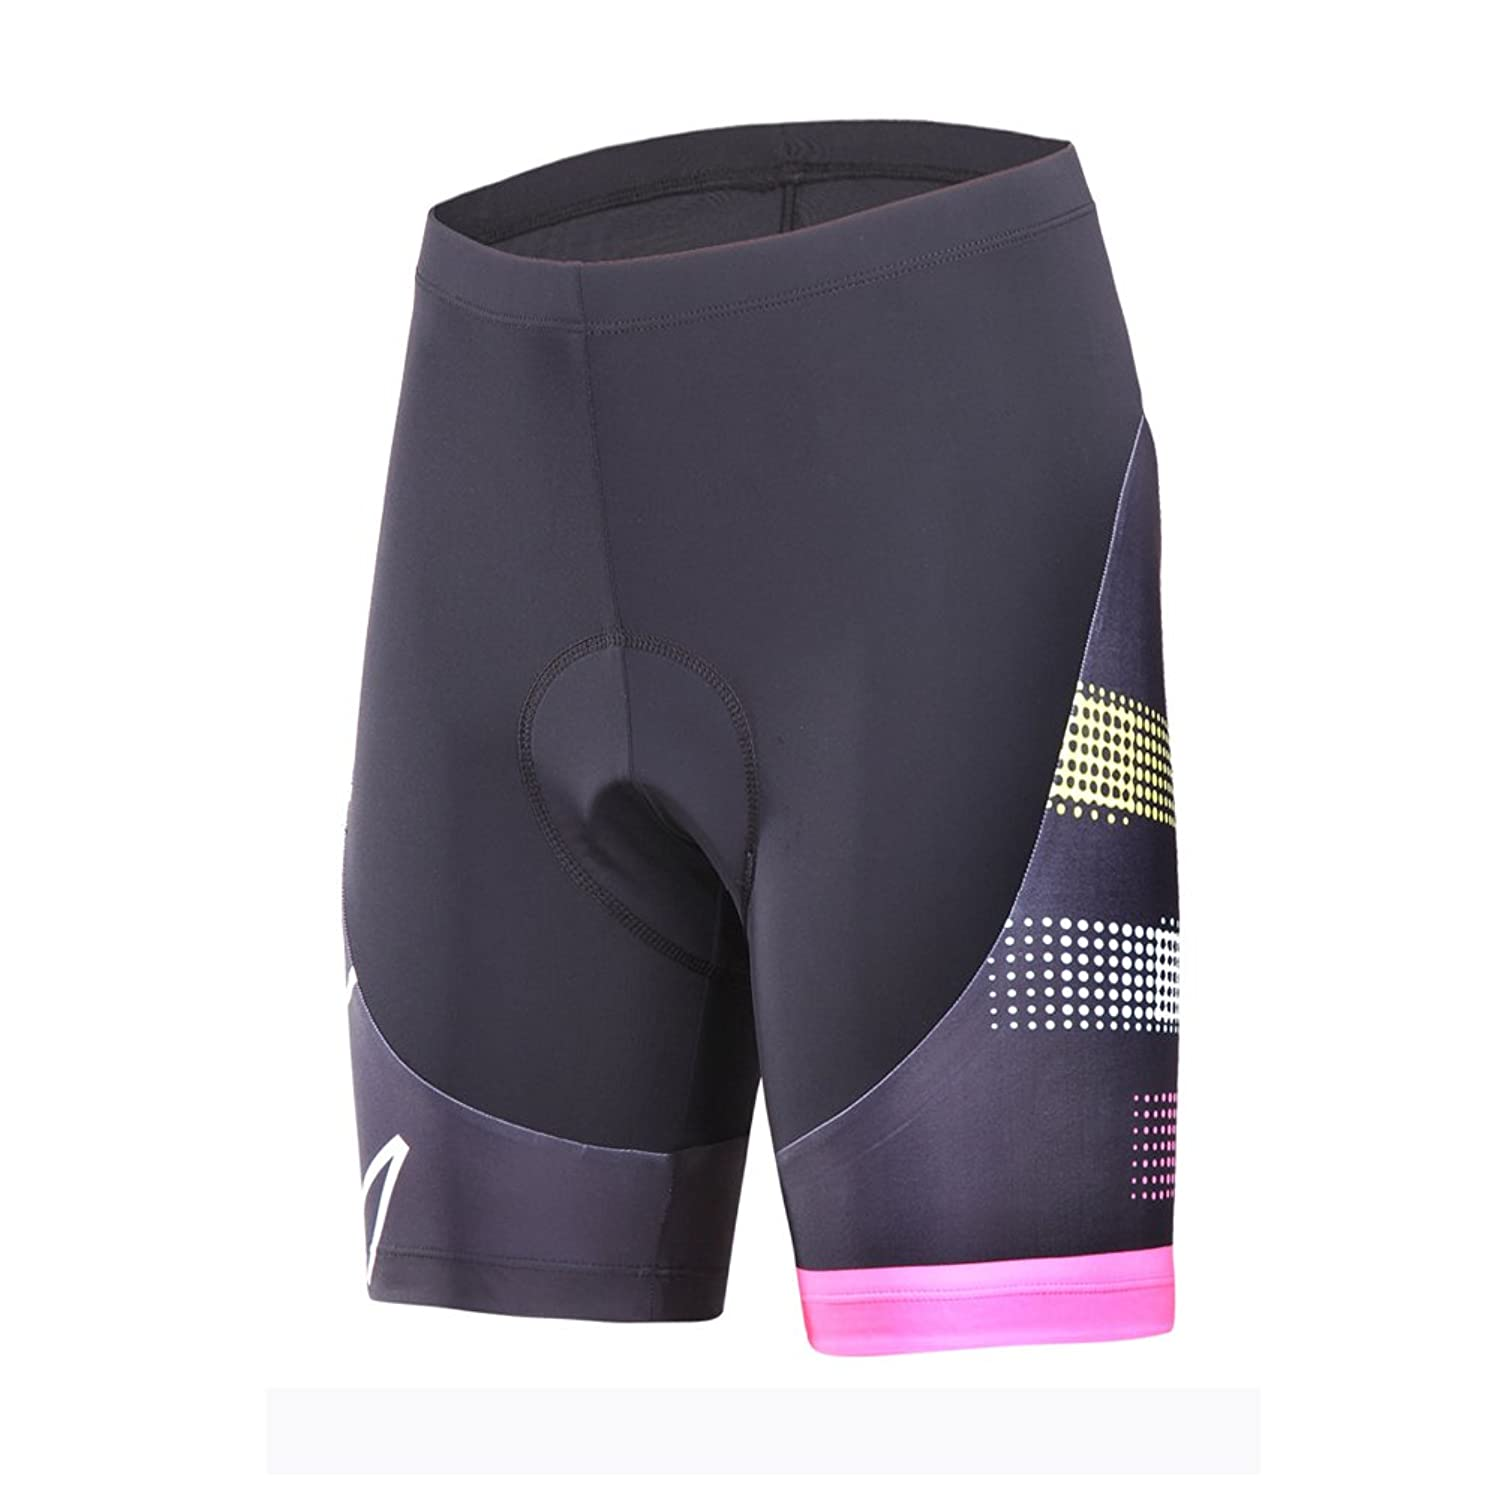 (Limited time) Beroy Cycling Women's Short, Bike Shorts with 3D Gel Padded, Large, Pink